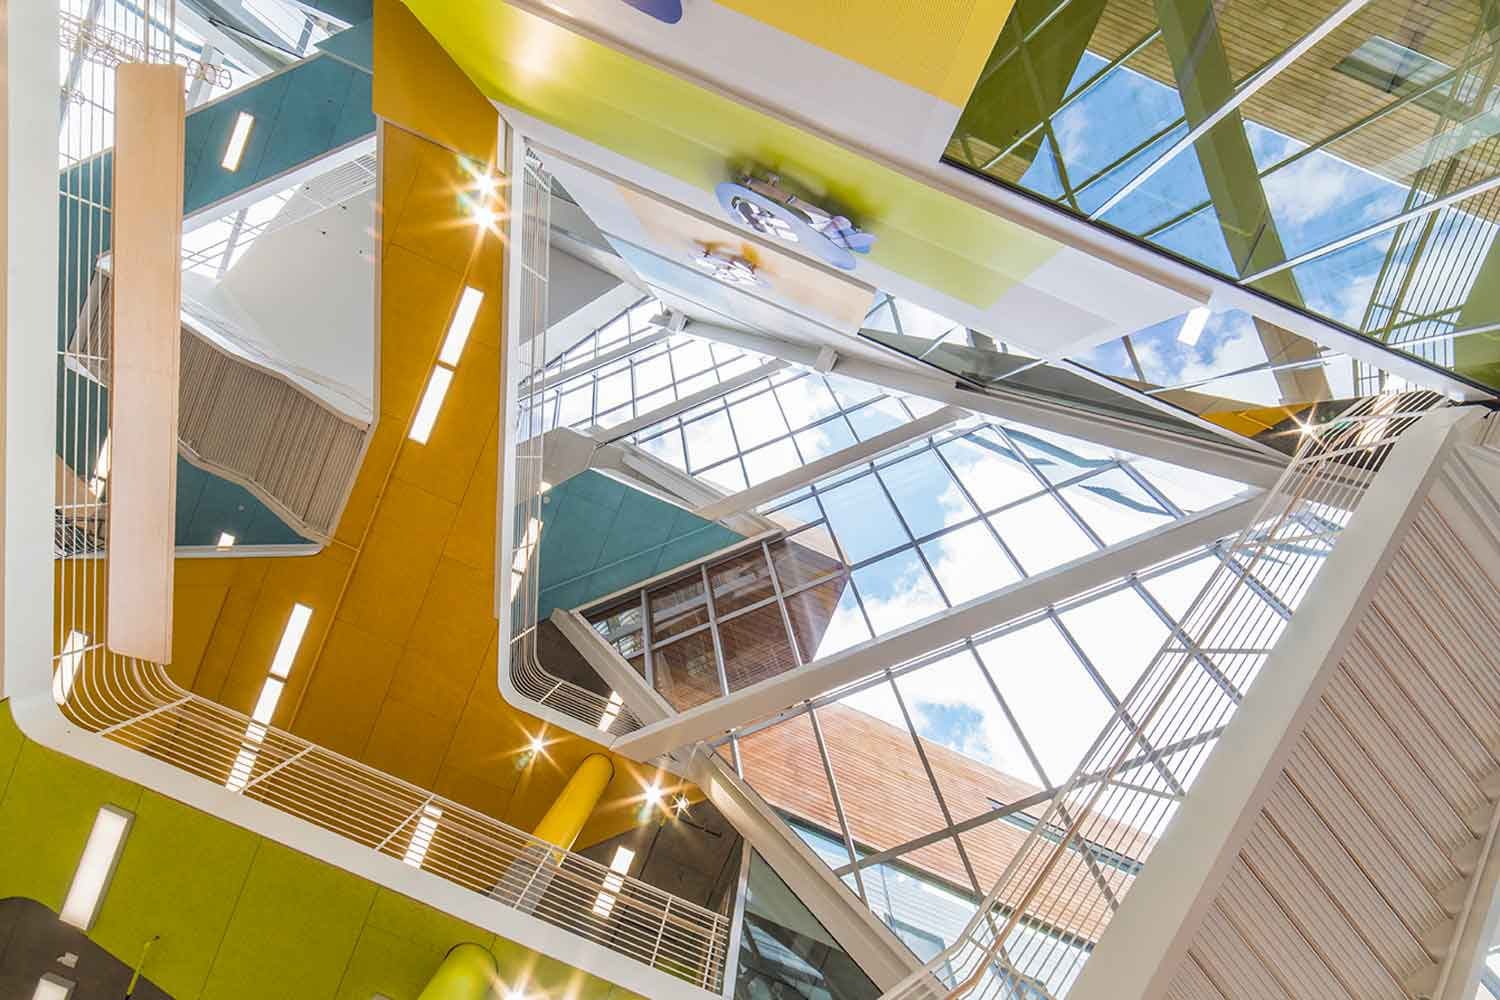 Atrium space looking up. The colors and building form help fuse urban activity with campus life. Janis Rozkalns